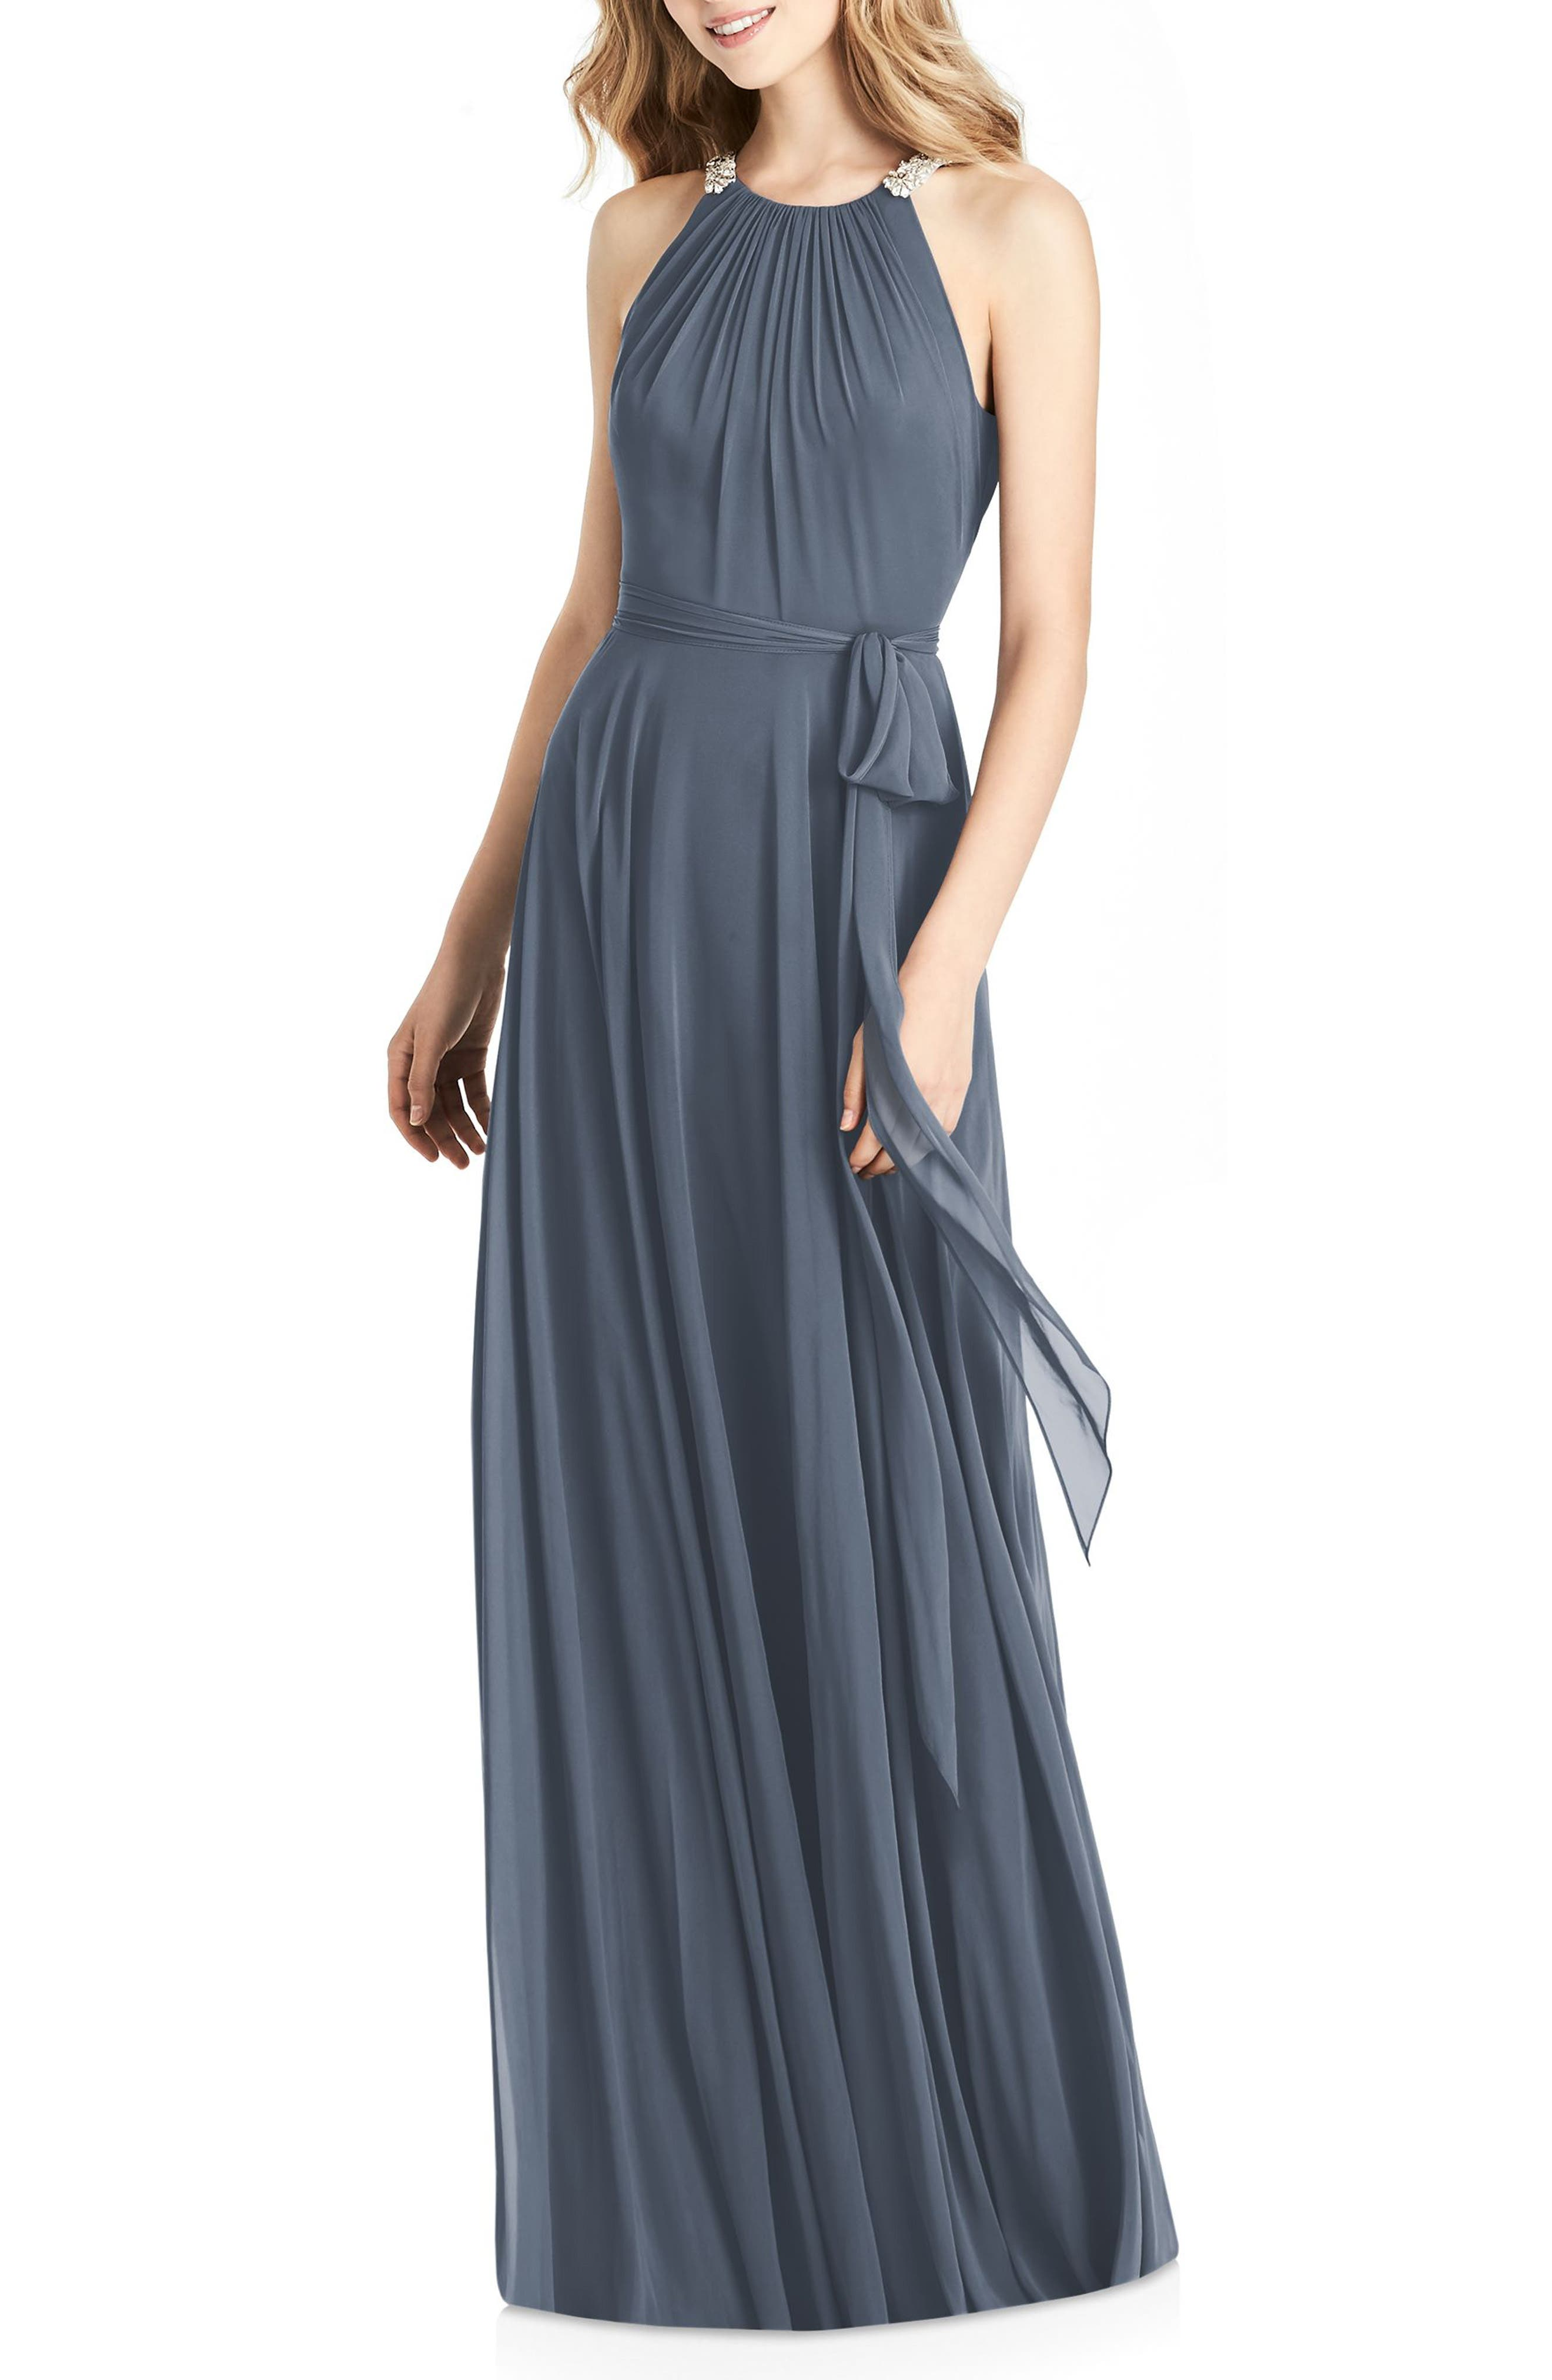 JENNY PACKHAM Beaded Strap Chiffon Gown, Main, color, SILVERSTONE